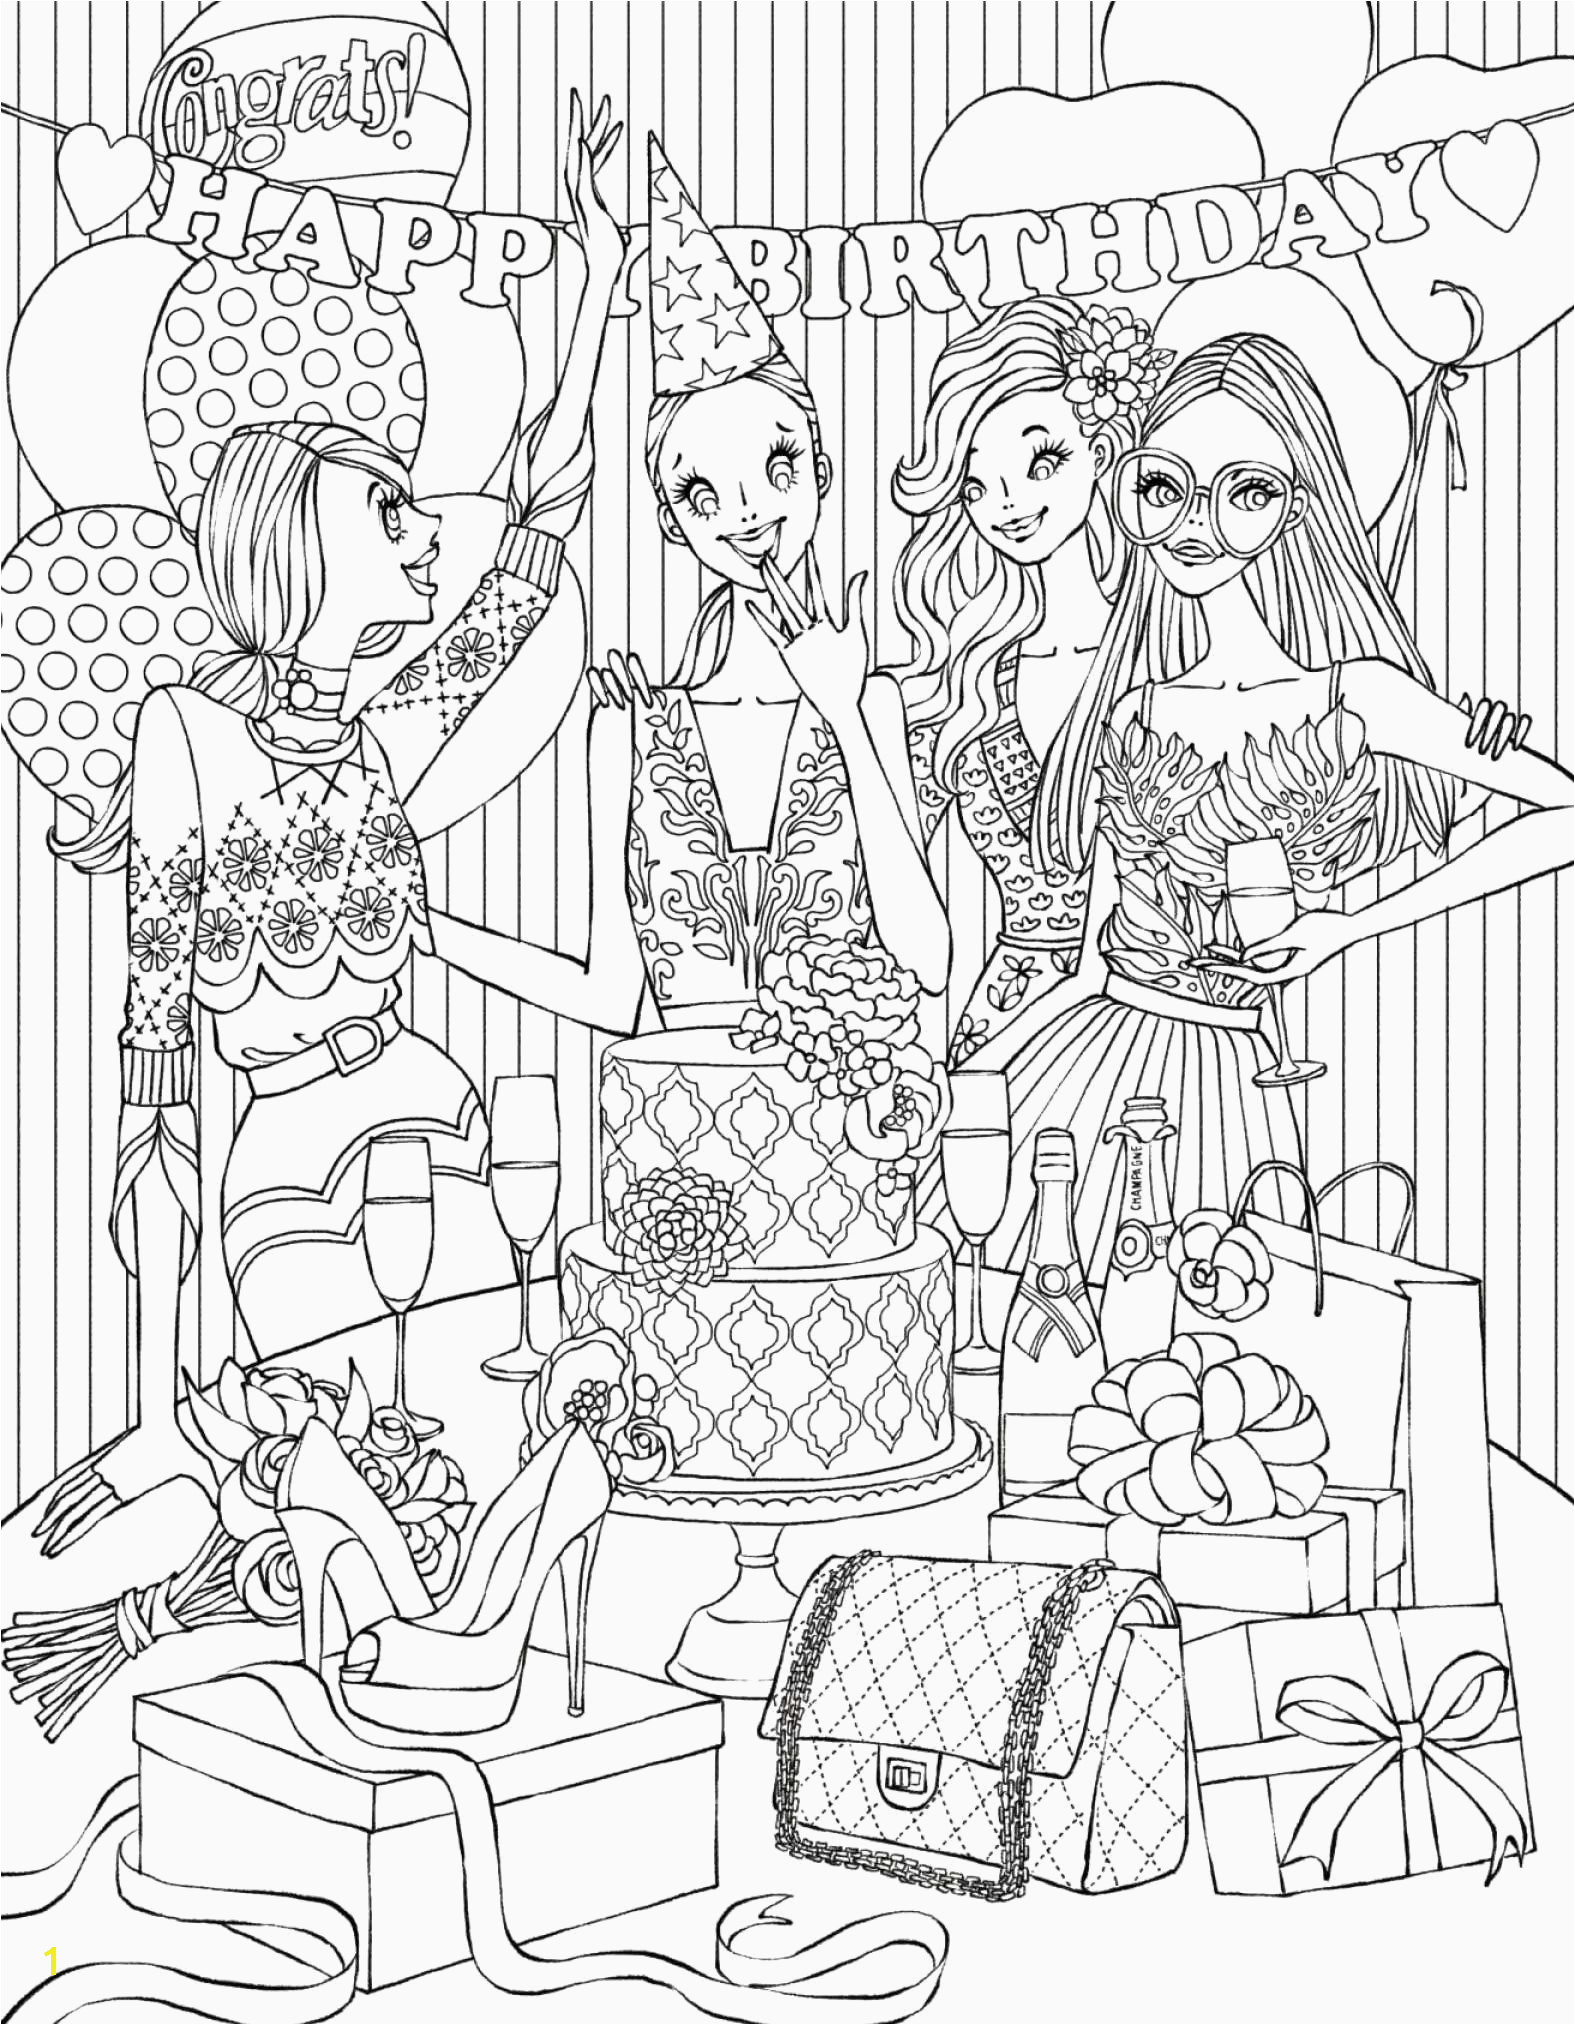 37 New Gallery Printable Holiday Coloring Pages